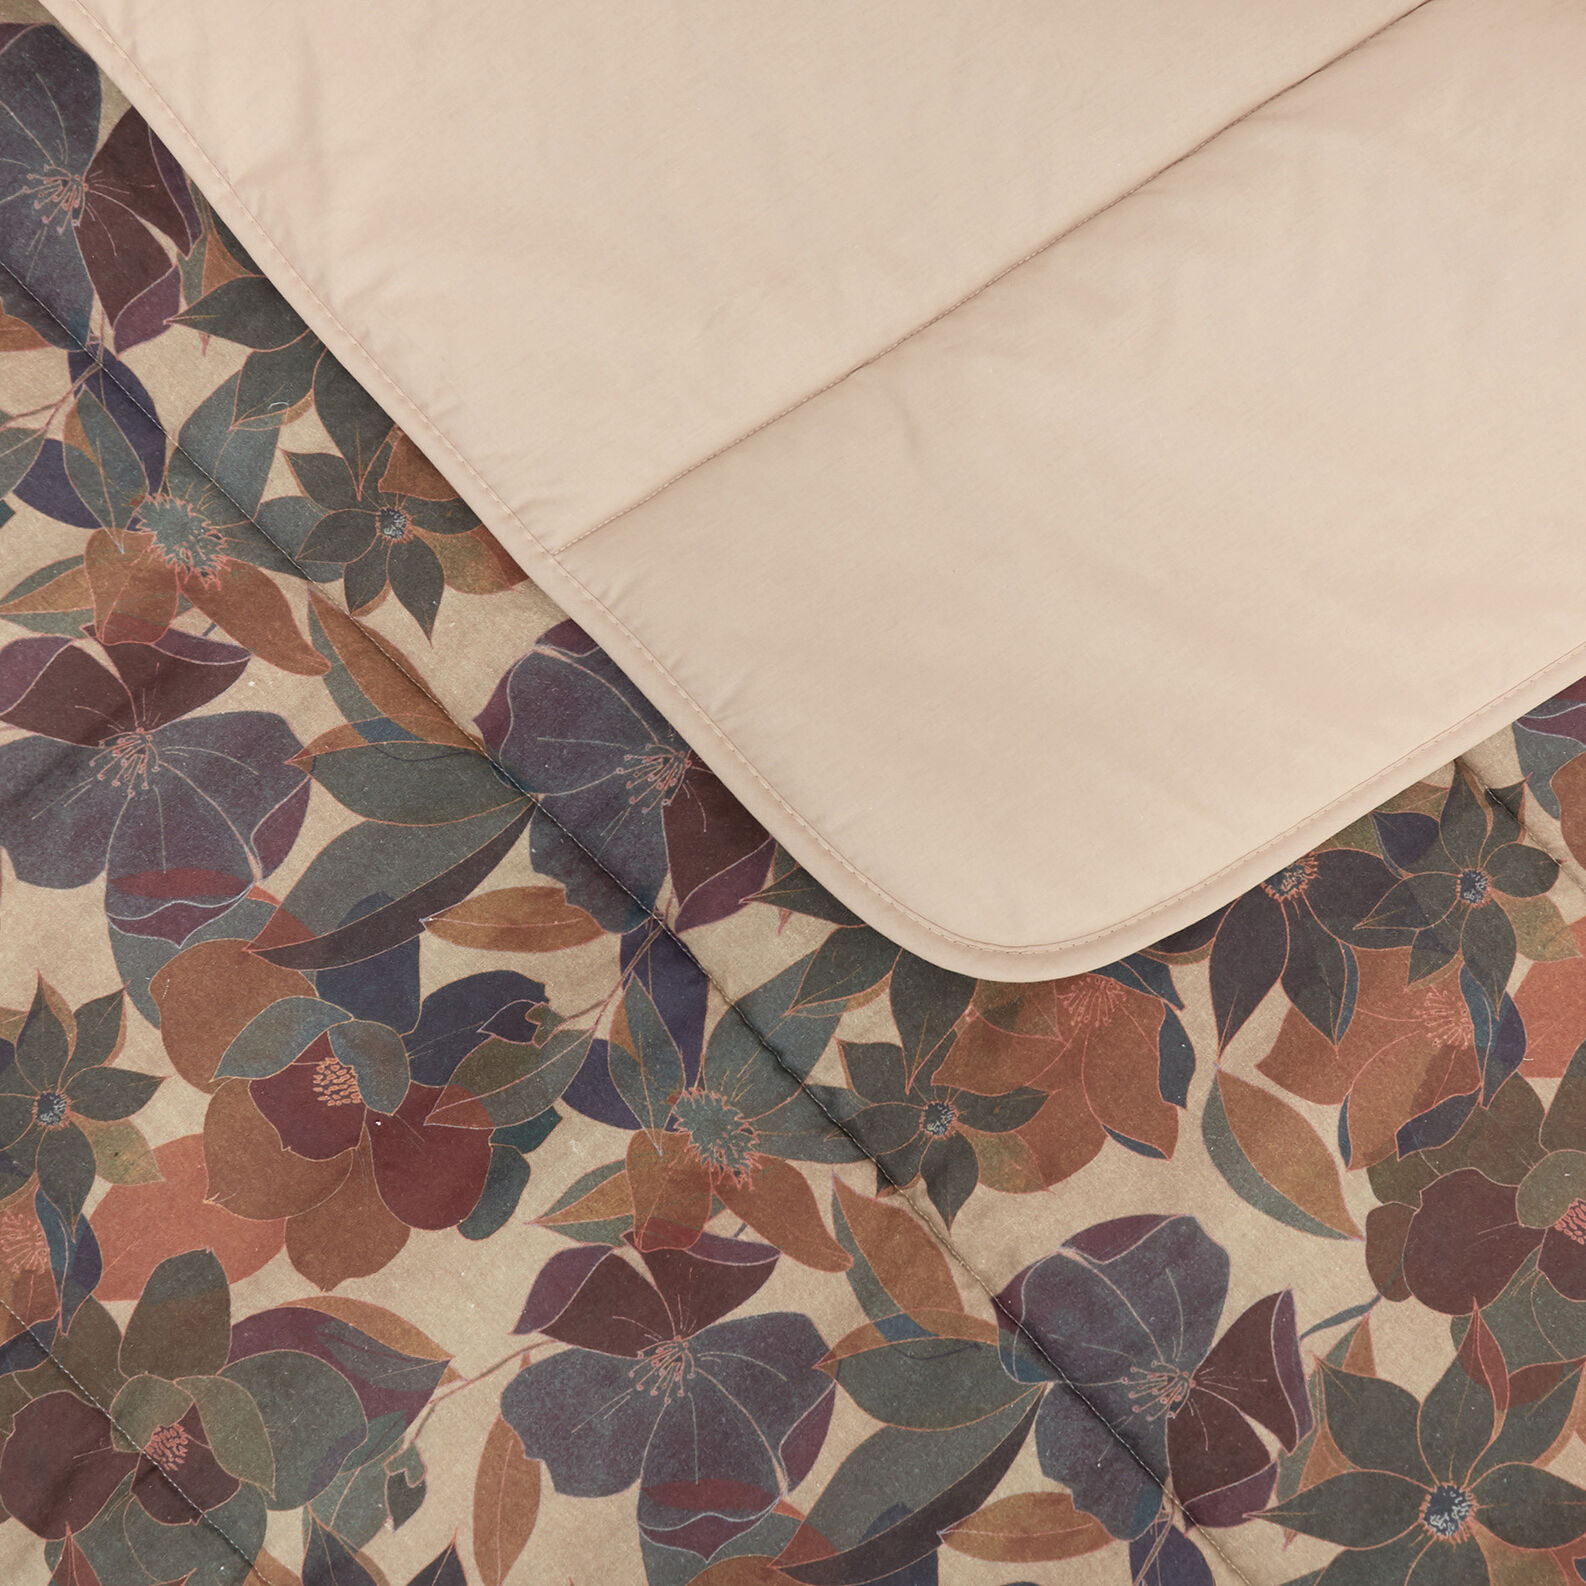 Quilt in washed 100% linen with floral pattern